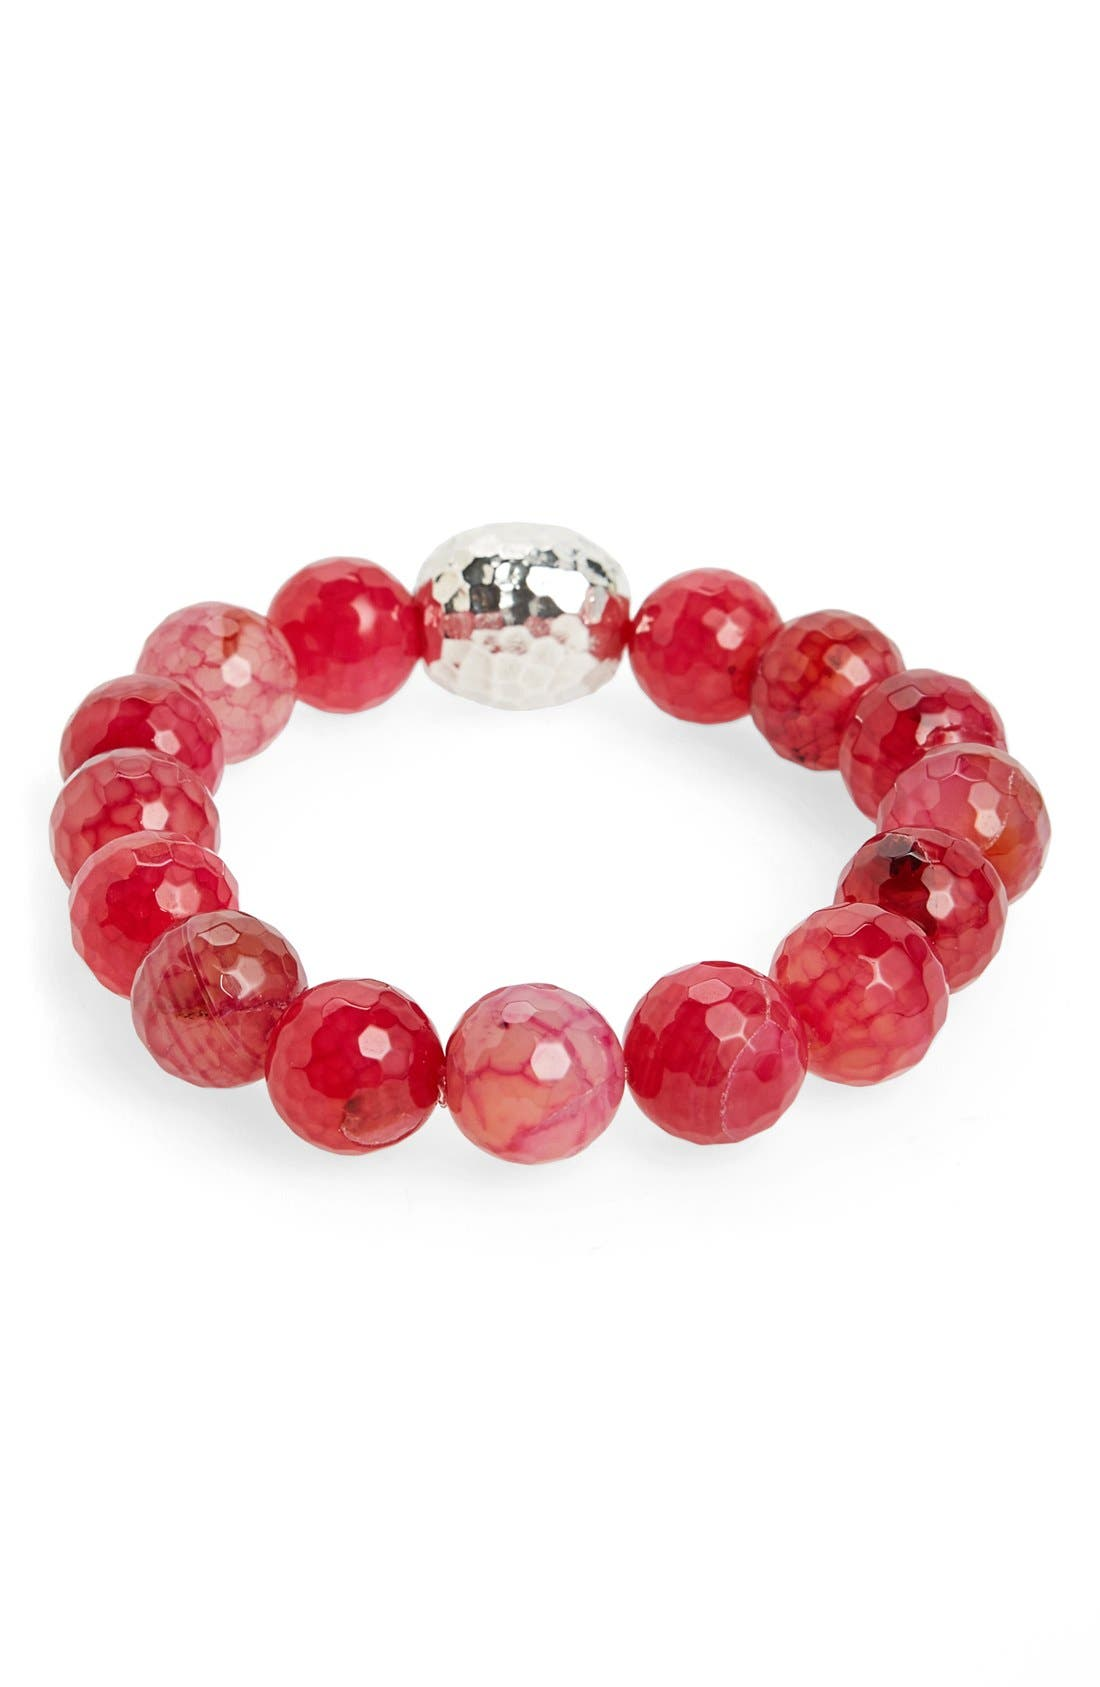 Stretch Bracelet,                             Main thumbnail 1, color,                             Red Fire Agate